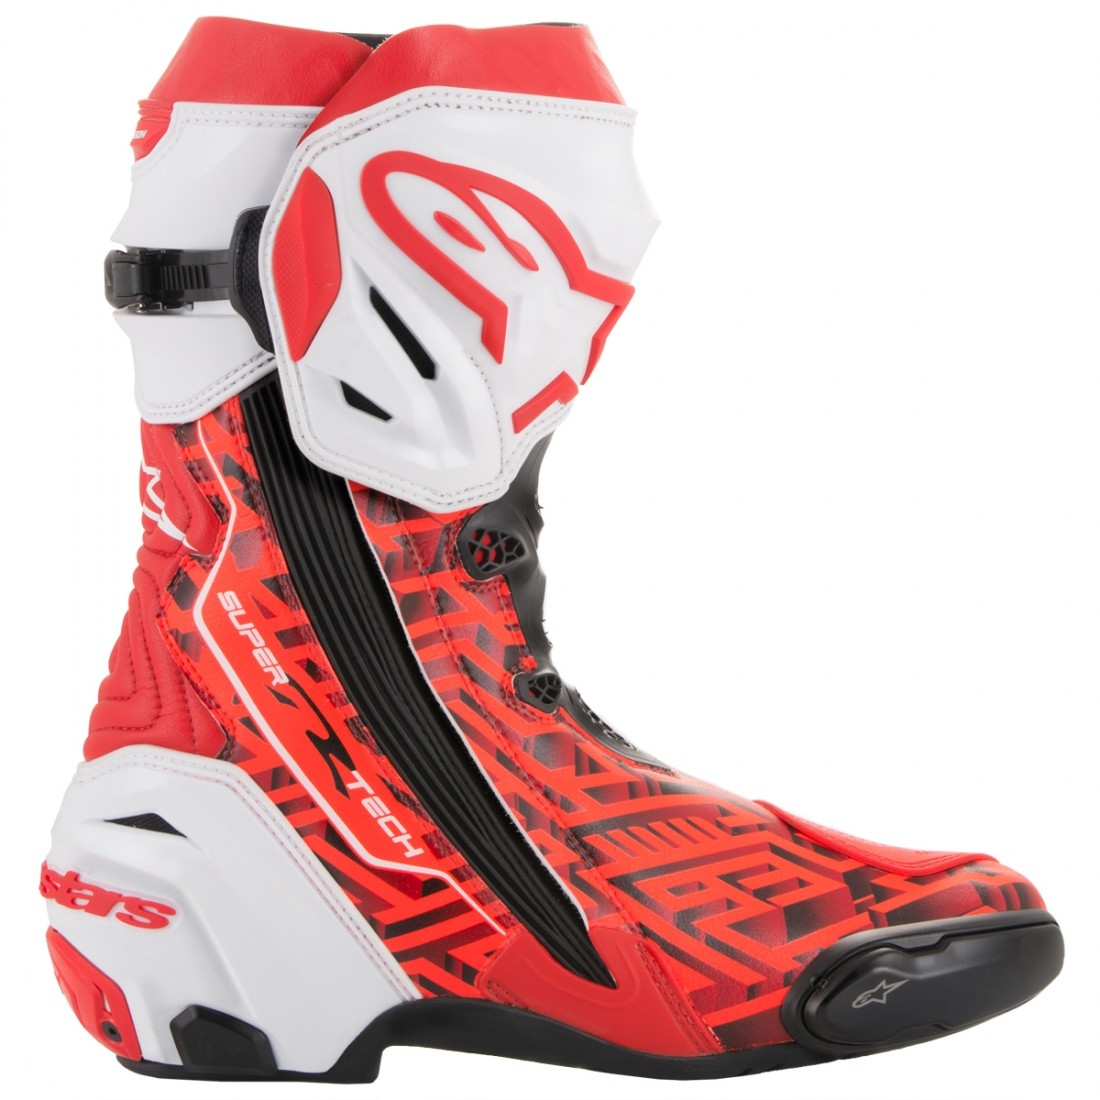 alpinestars supertech r mm93 maze marc marquez limited edition boots motocard. Black Bedroom Furniture Sets. Home Design Ideas